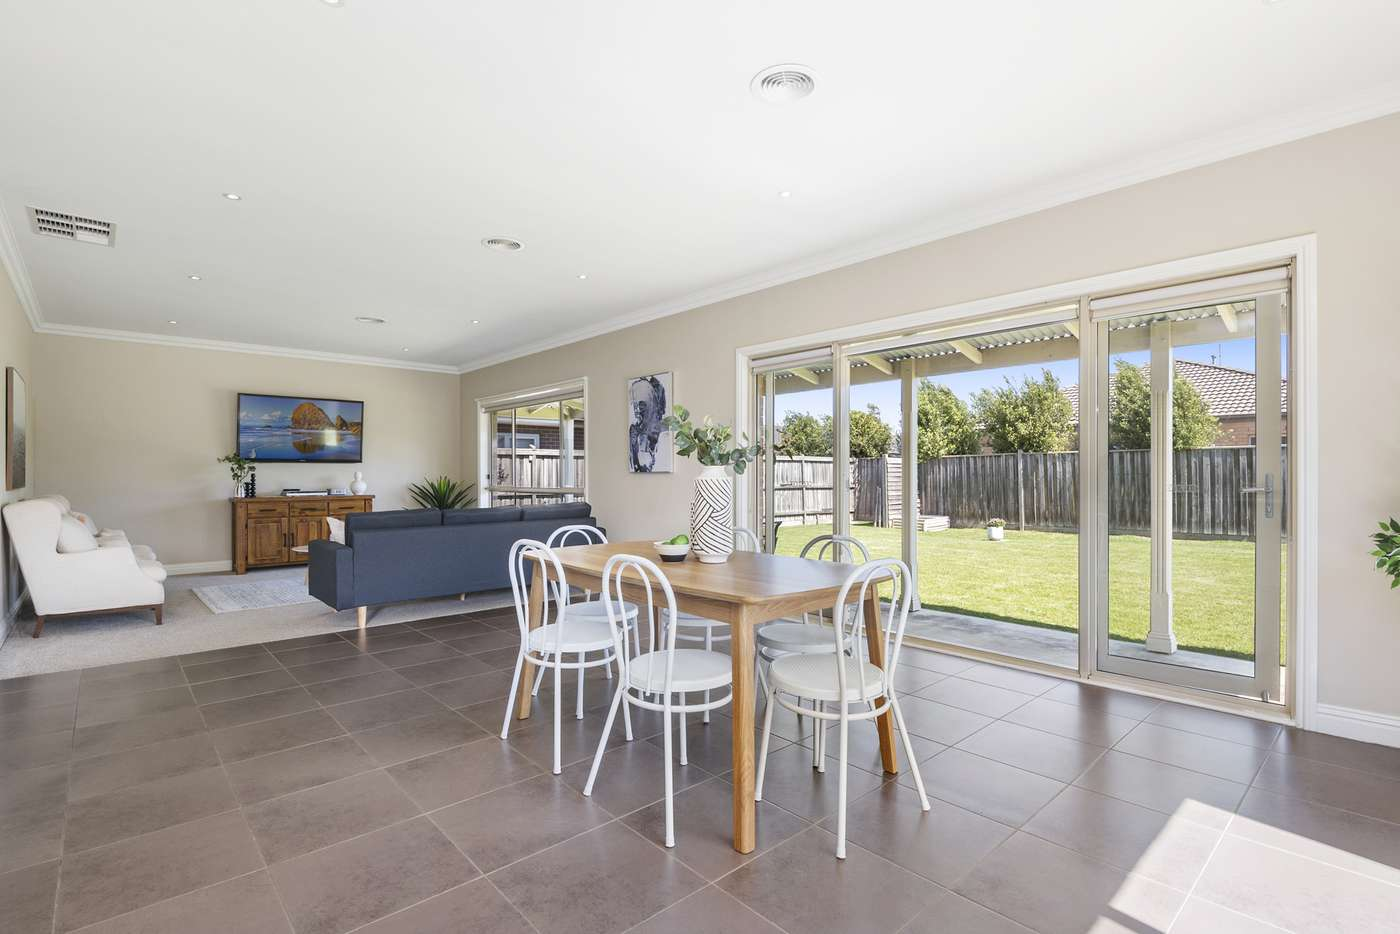 Fifth view of Homely house listing, 68 Wallara Waters Boulevard, Wallan VIC 3756